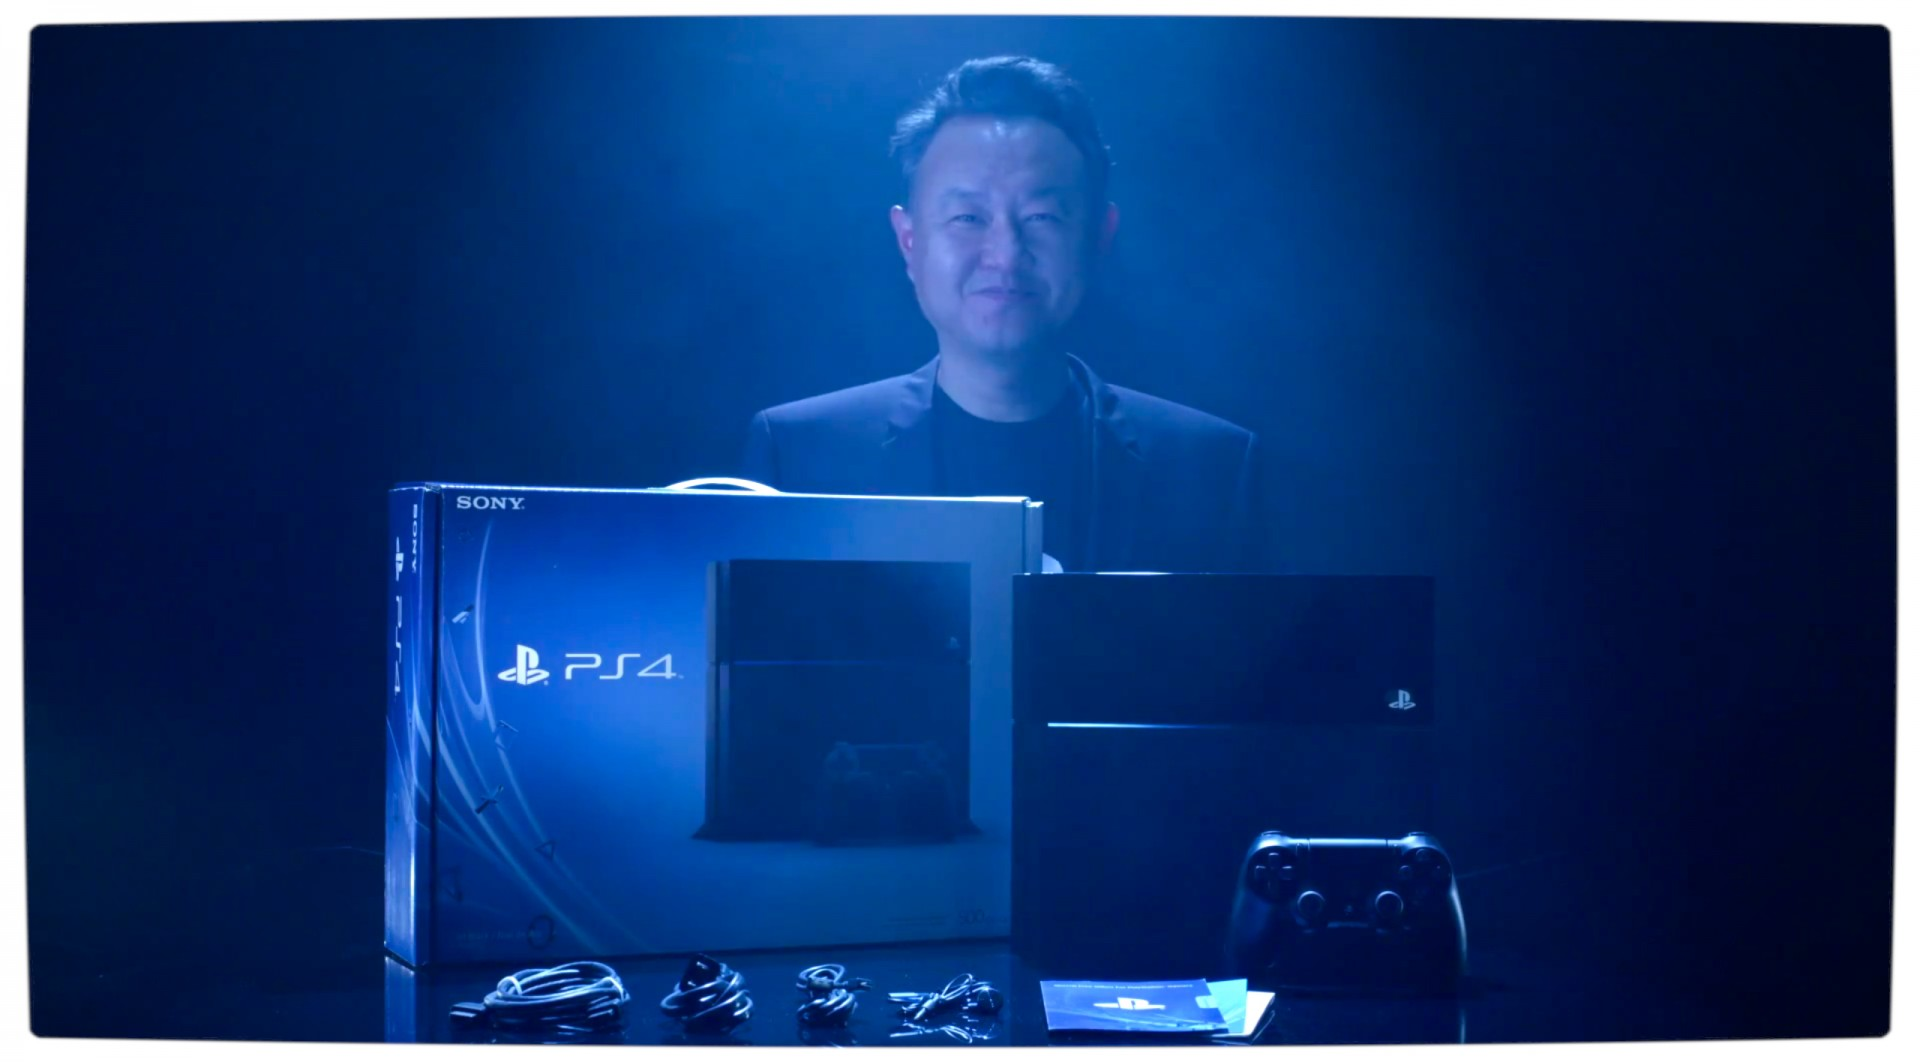 PlayStation 4 Update 2.0 is Here and it is Disappointing